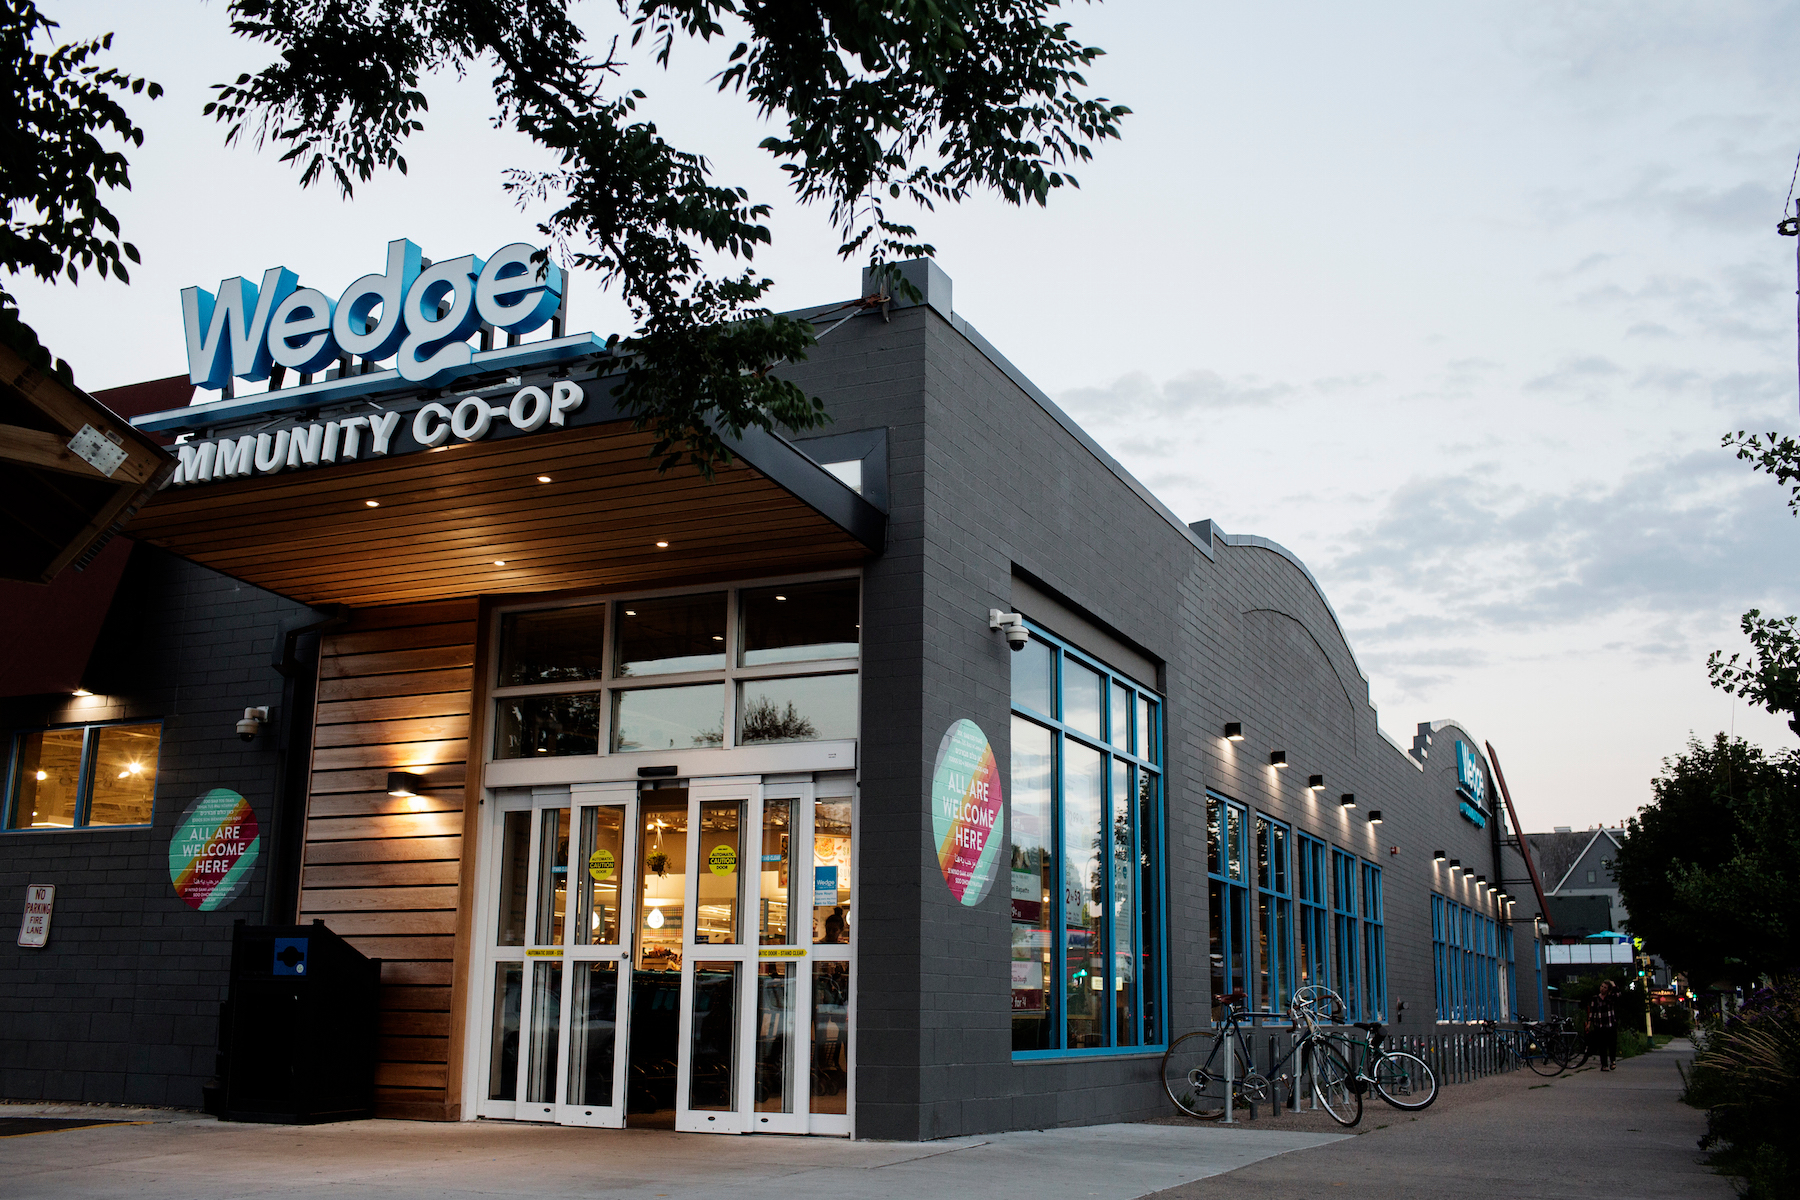 Exterior at Wedge Co-op